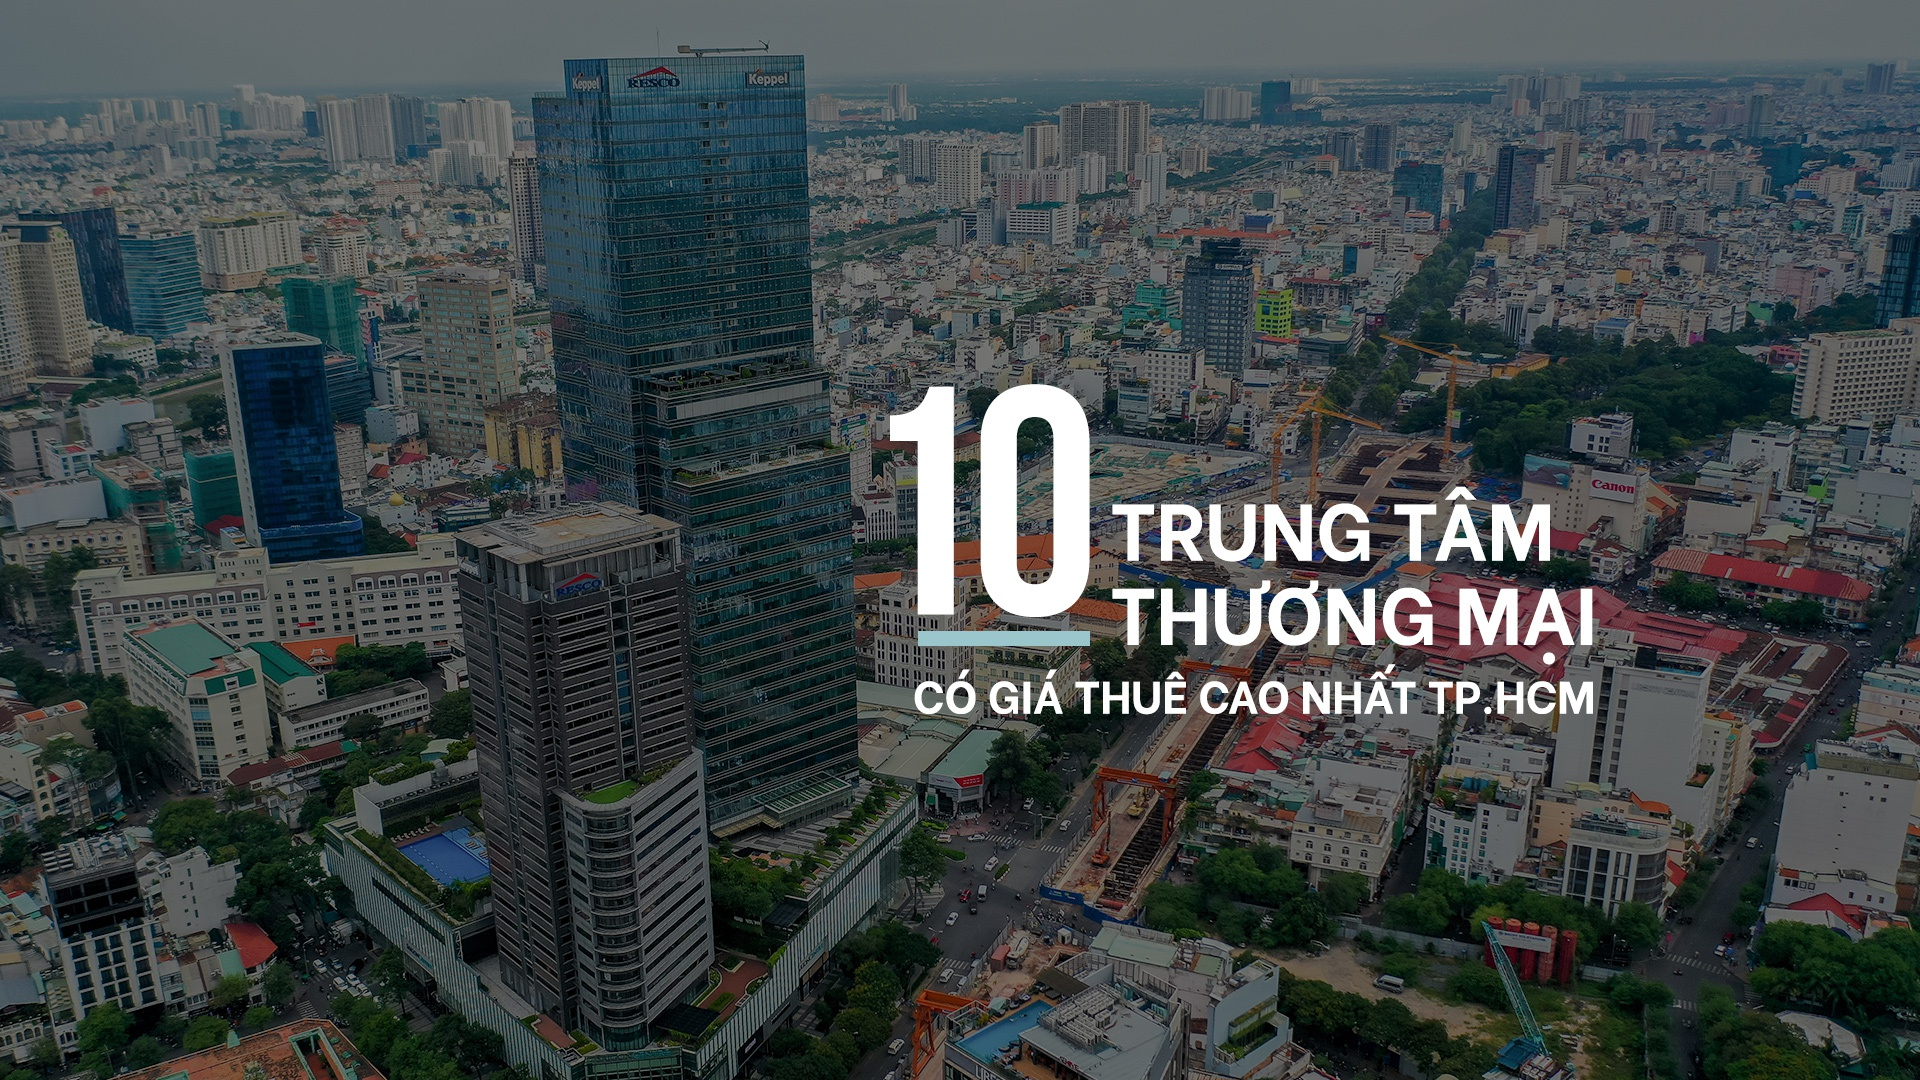 trung tam thuong mai co gia thue dat nhat TP.HCM anh 1